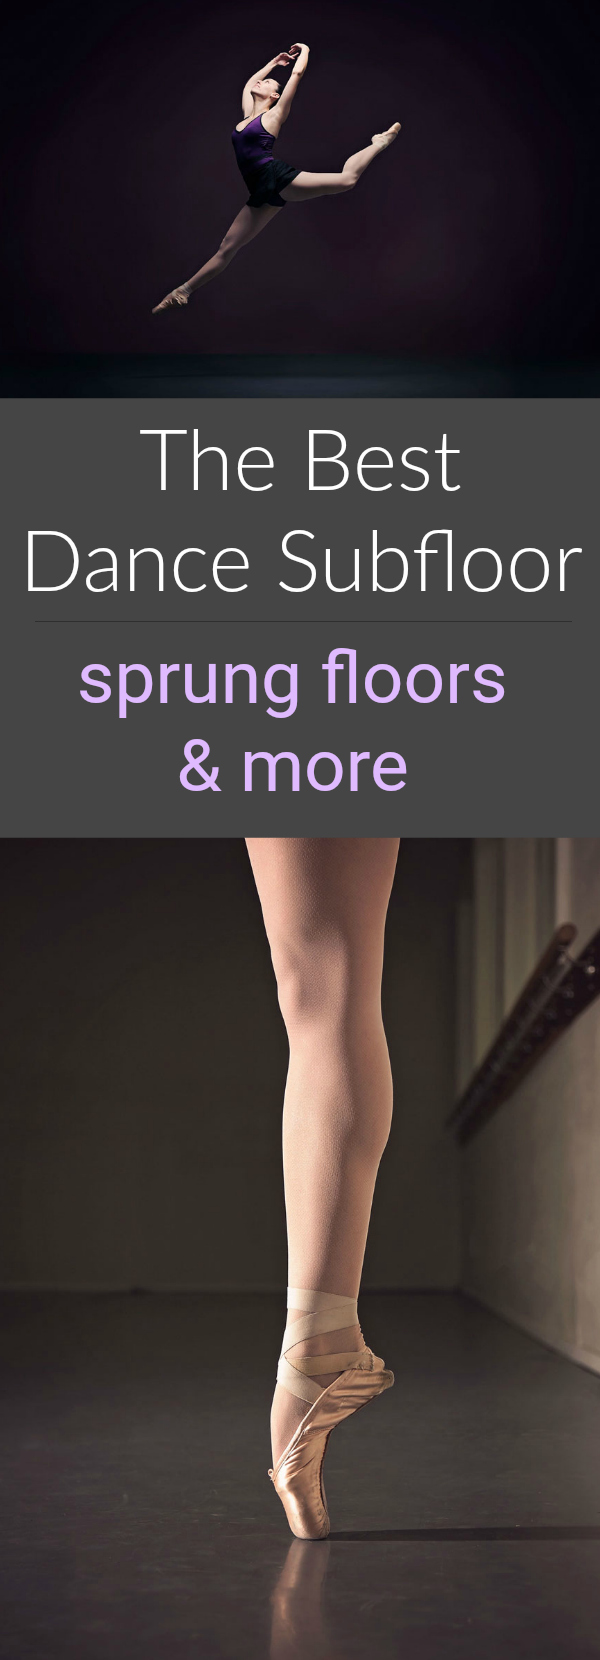 The Best Dance Subfloor: Sprung Floors & More. Find everything from home practice to professional dance subfloors.